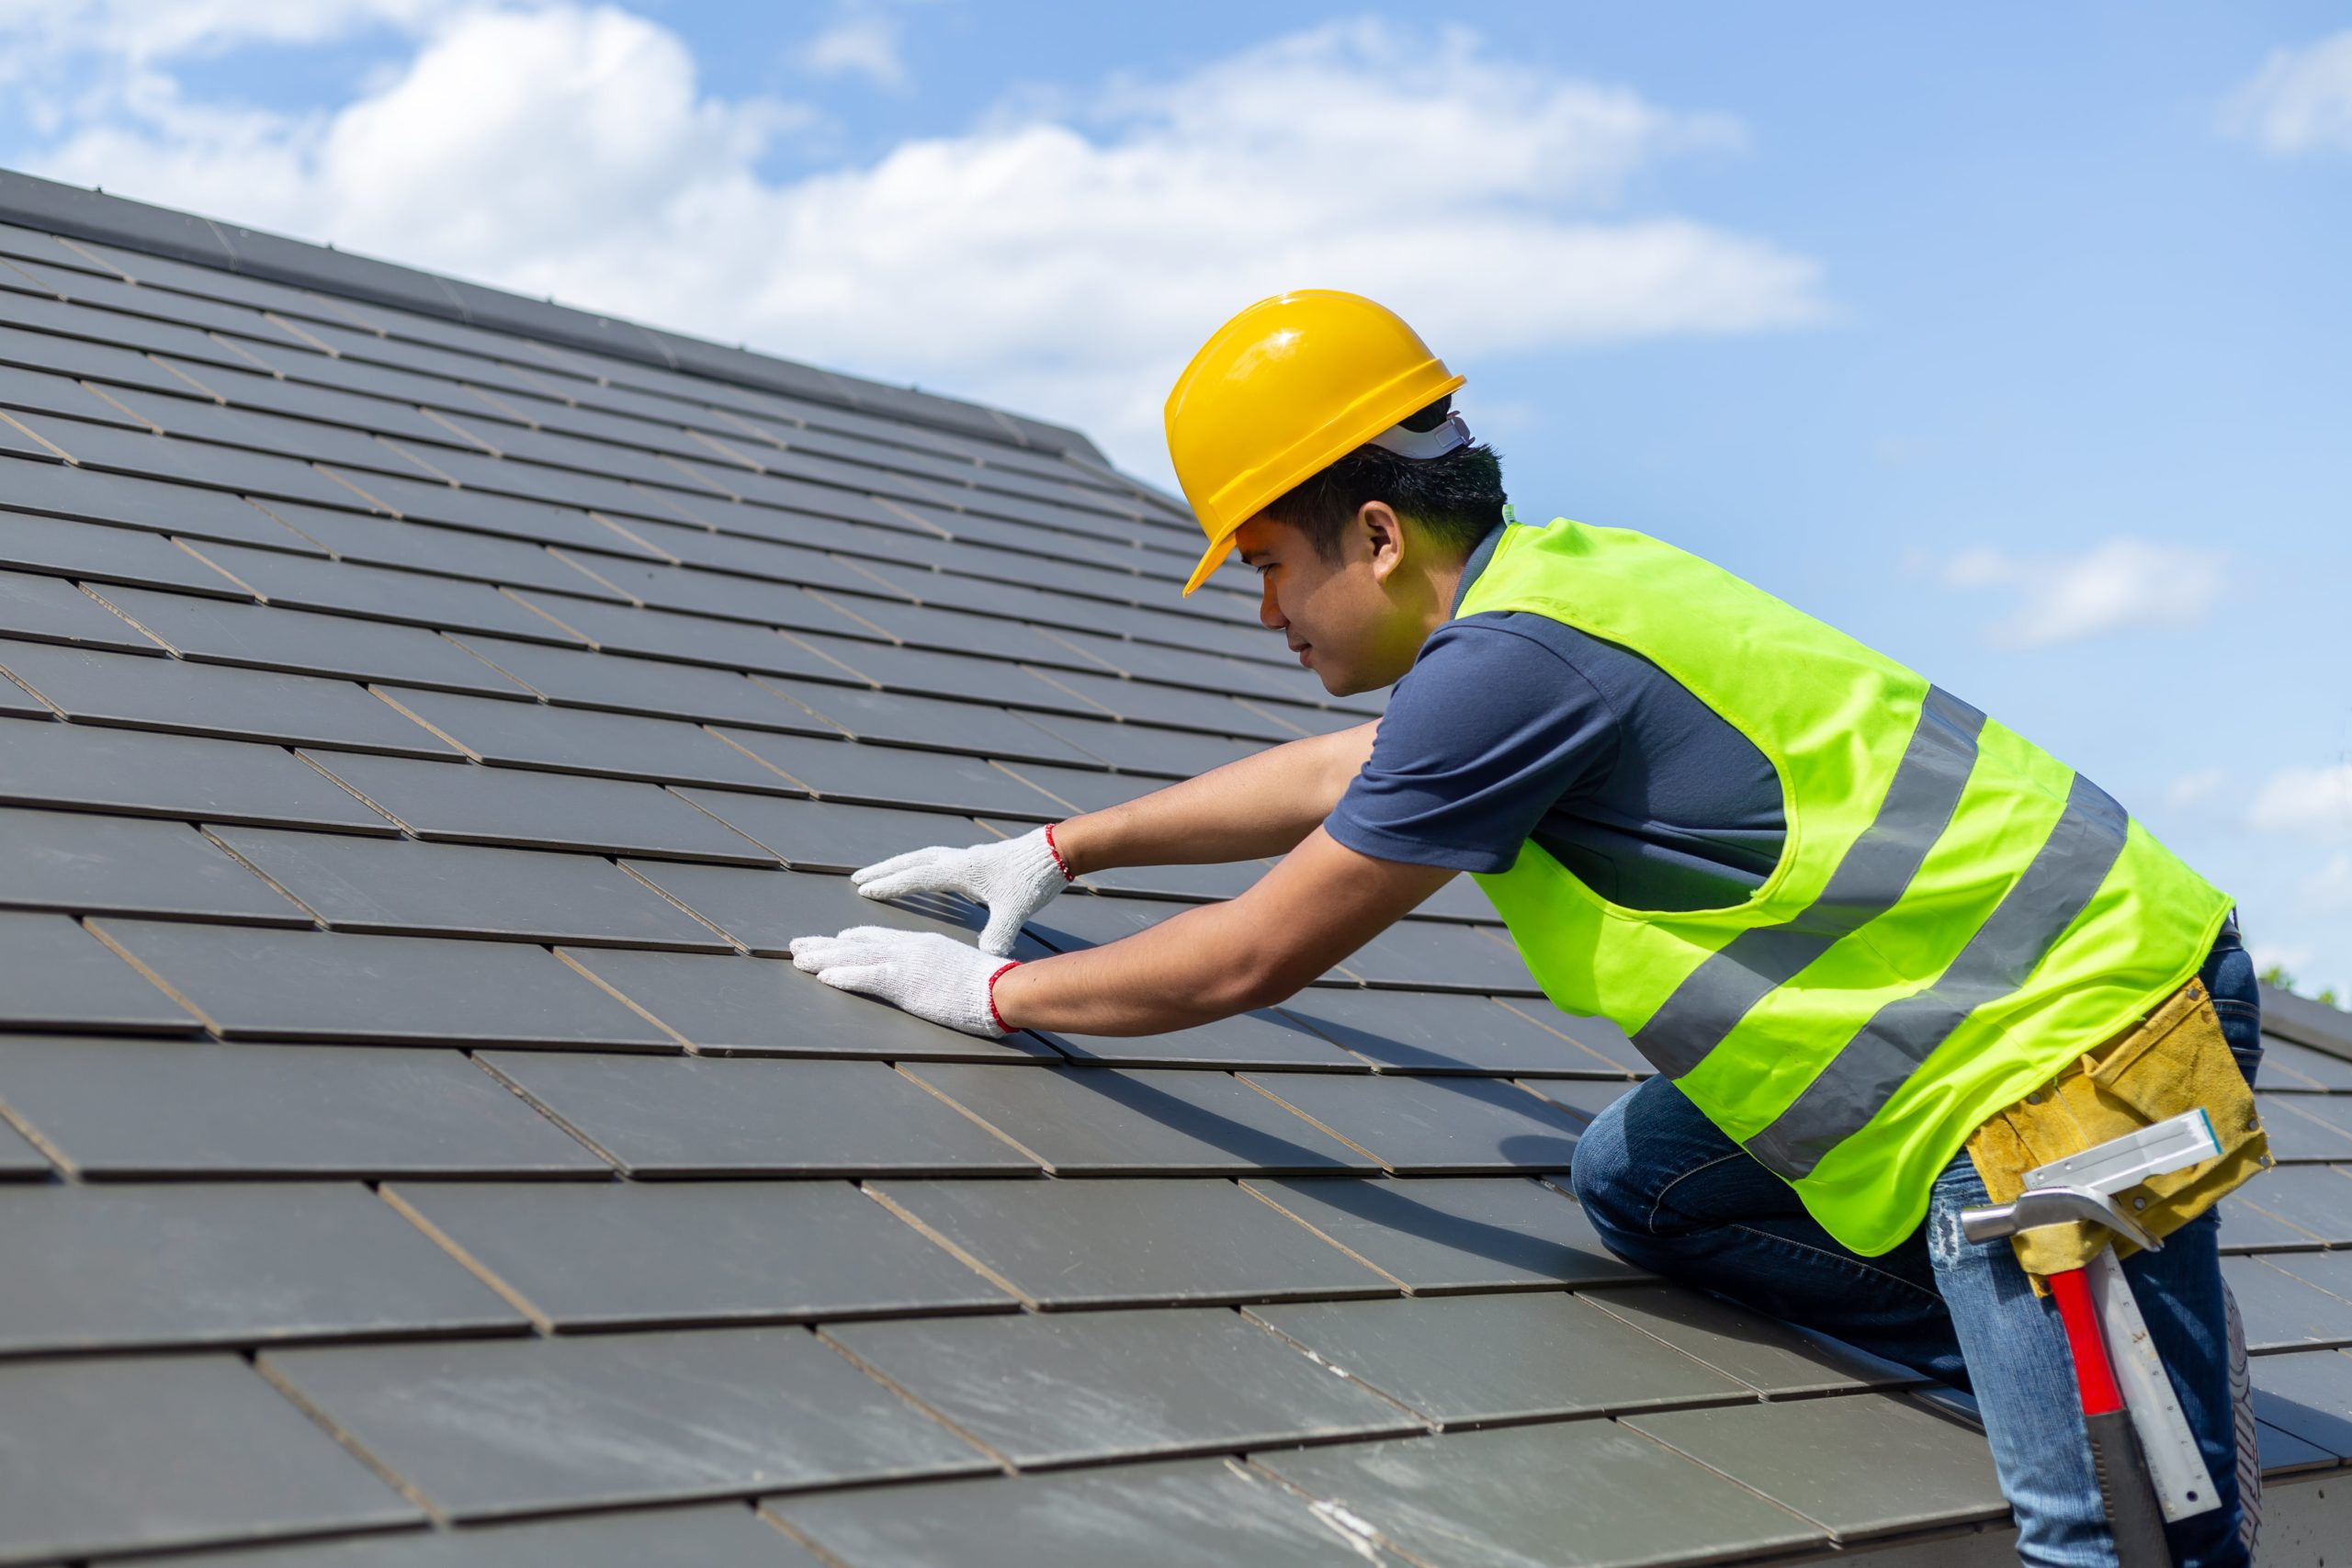 Roofer Working on a Roof - Roofing Companies - Get Your Quote